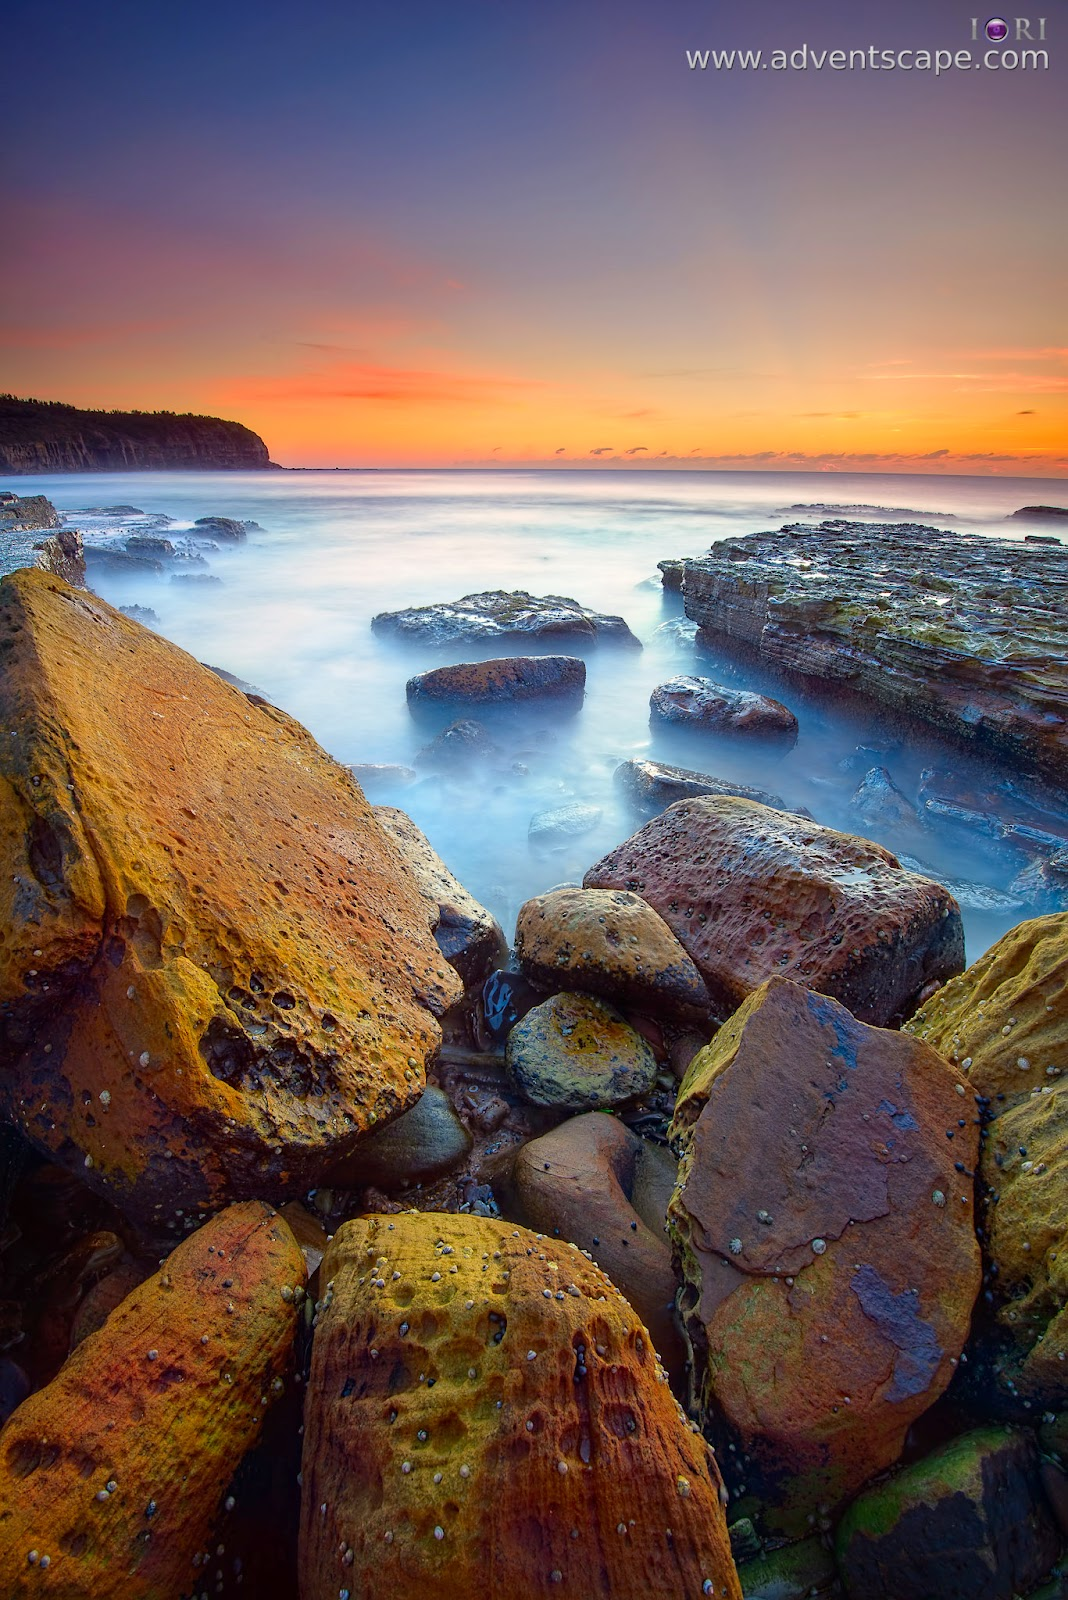 Australia, Australian Landscape Photographer, beach, golden hour, landscape, Narrabeen, Narrabeen Head, New South Wales, Northern Beaches, NSW, Philip Avellana, seascape, sunrise, Turimetta, Warriewood